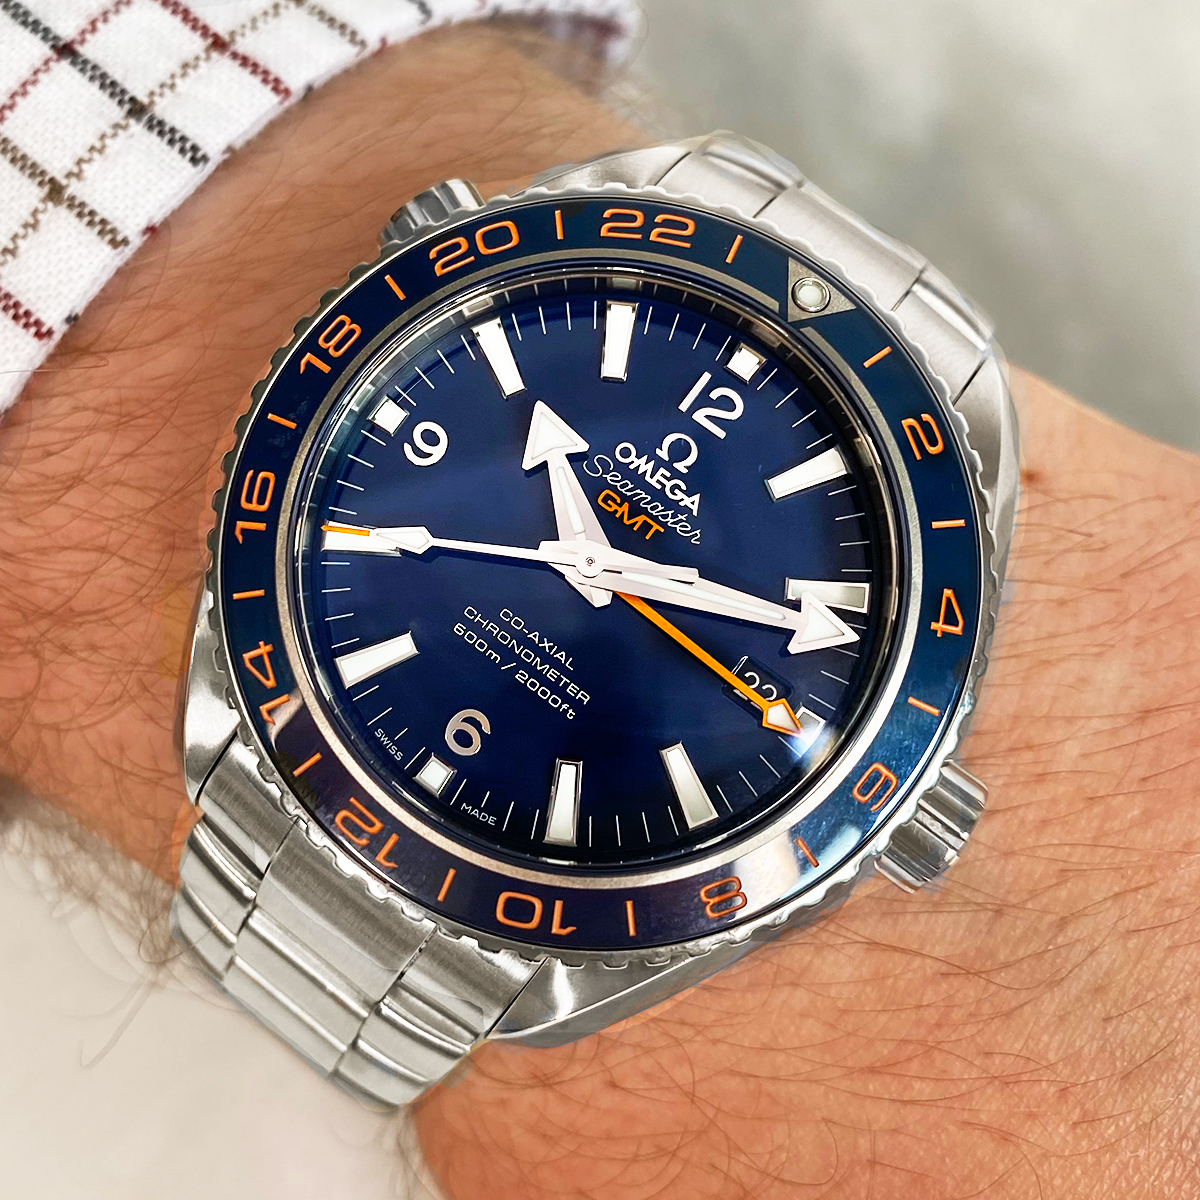 Omega Planet Ocean 600m GMT Automatic   23230442203001   2017